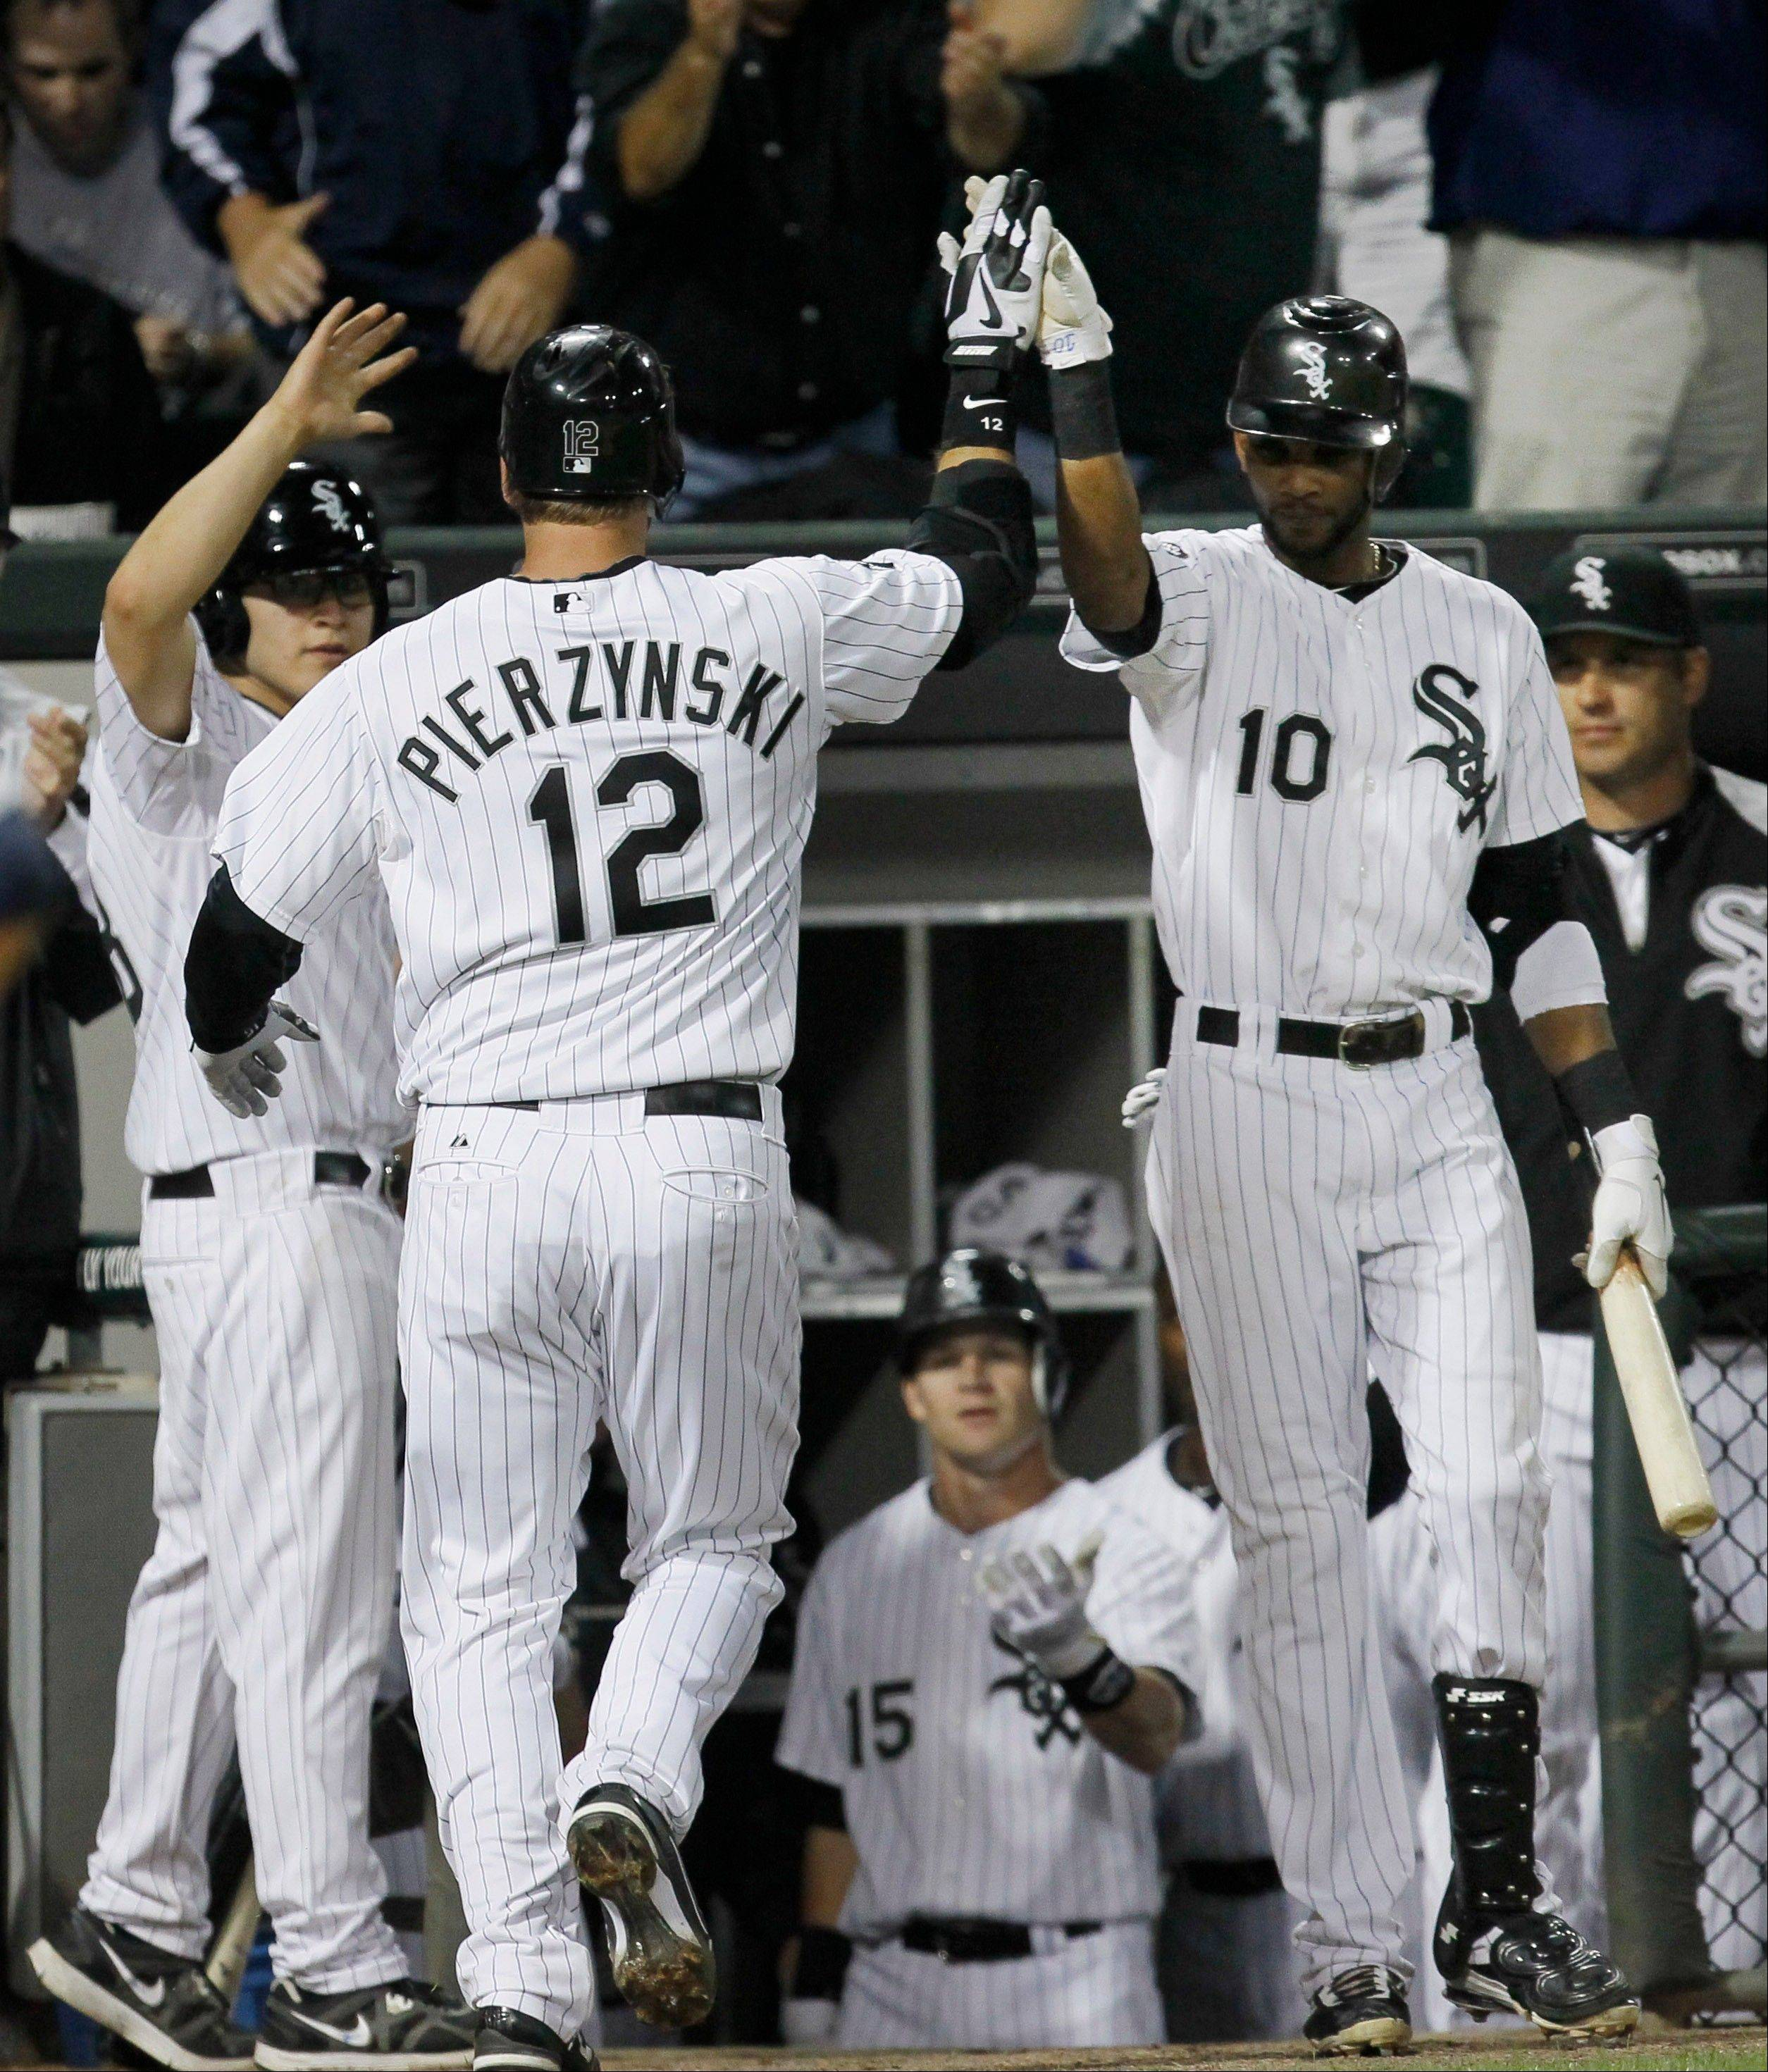 White Sox catcher A.J. Pierzynski is greeted outside the dugout by the bat boy, left, and Alexei Ramirez after hitting a home run off Detroit Tigers starting pitcher Rick Porcello during Monday's sixth inning at U.S. Cellular Field.